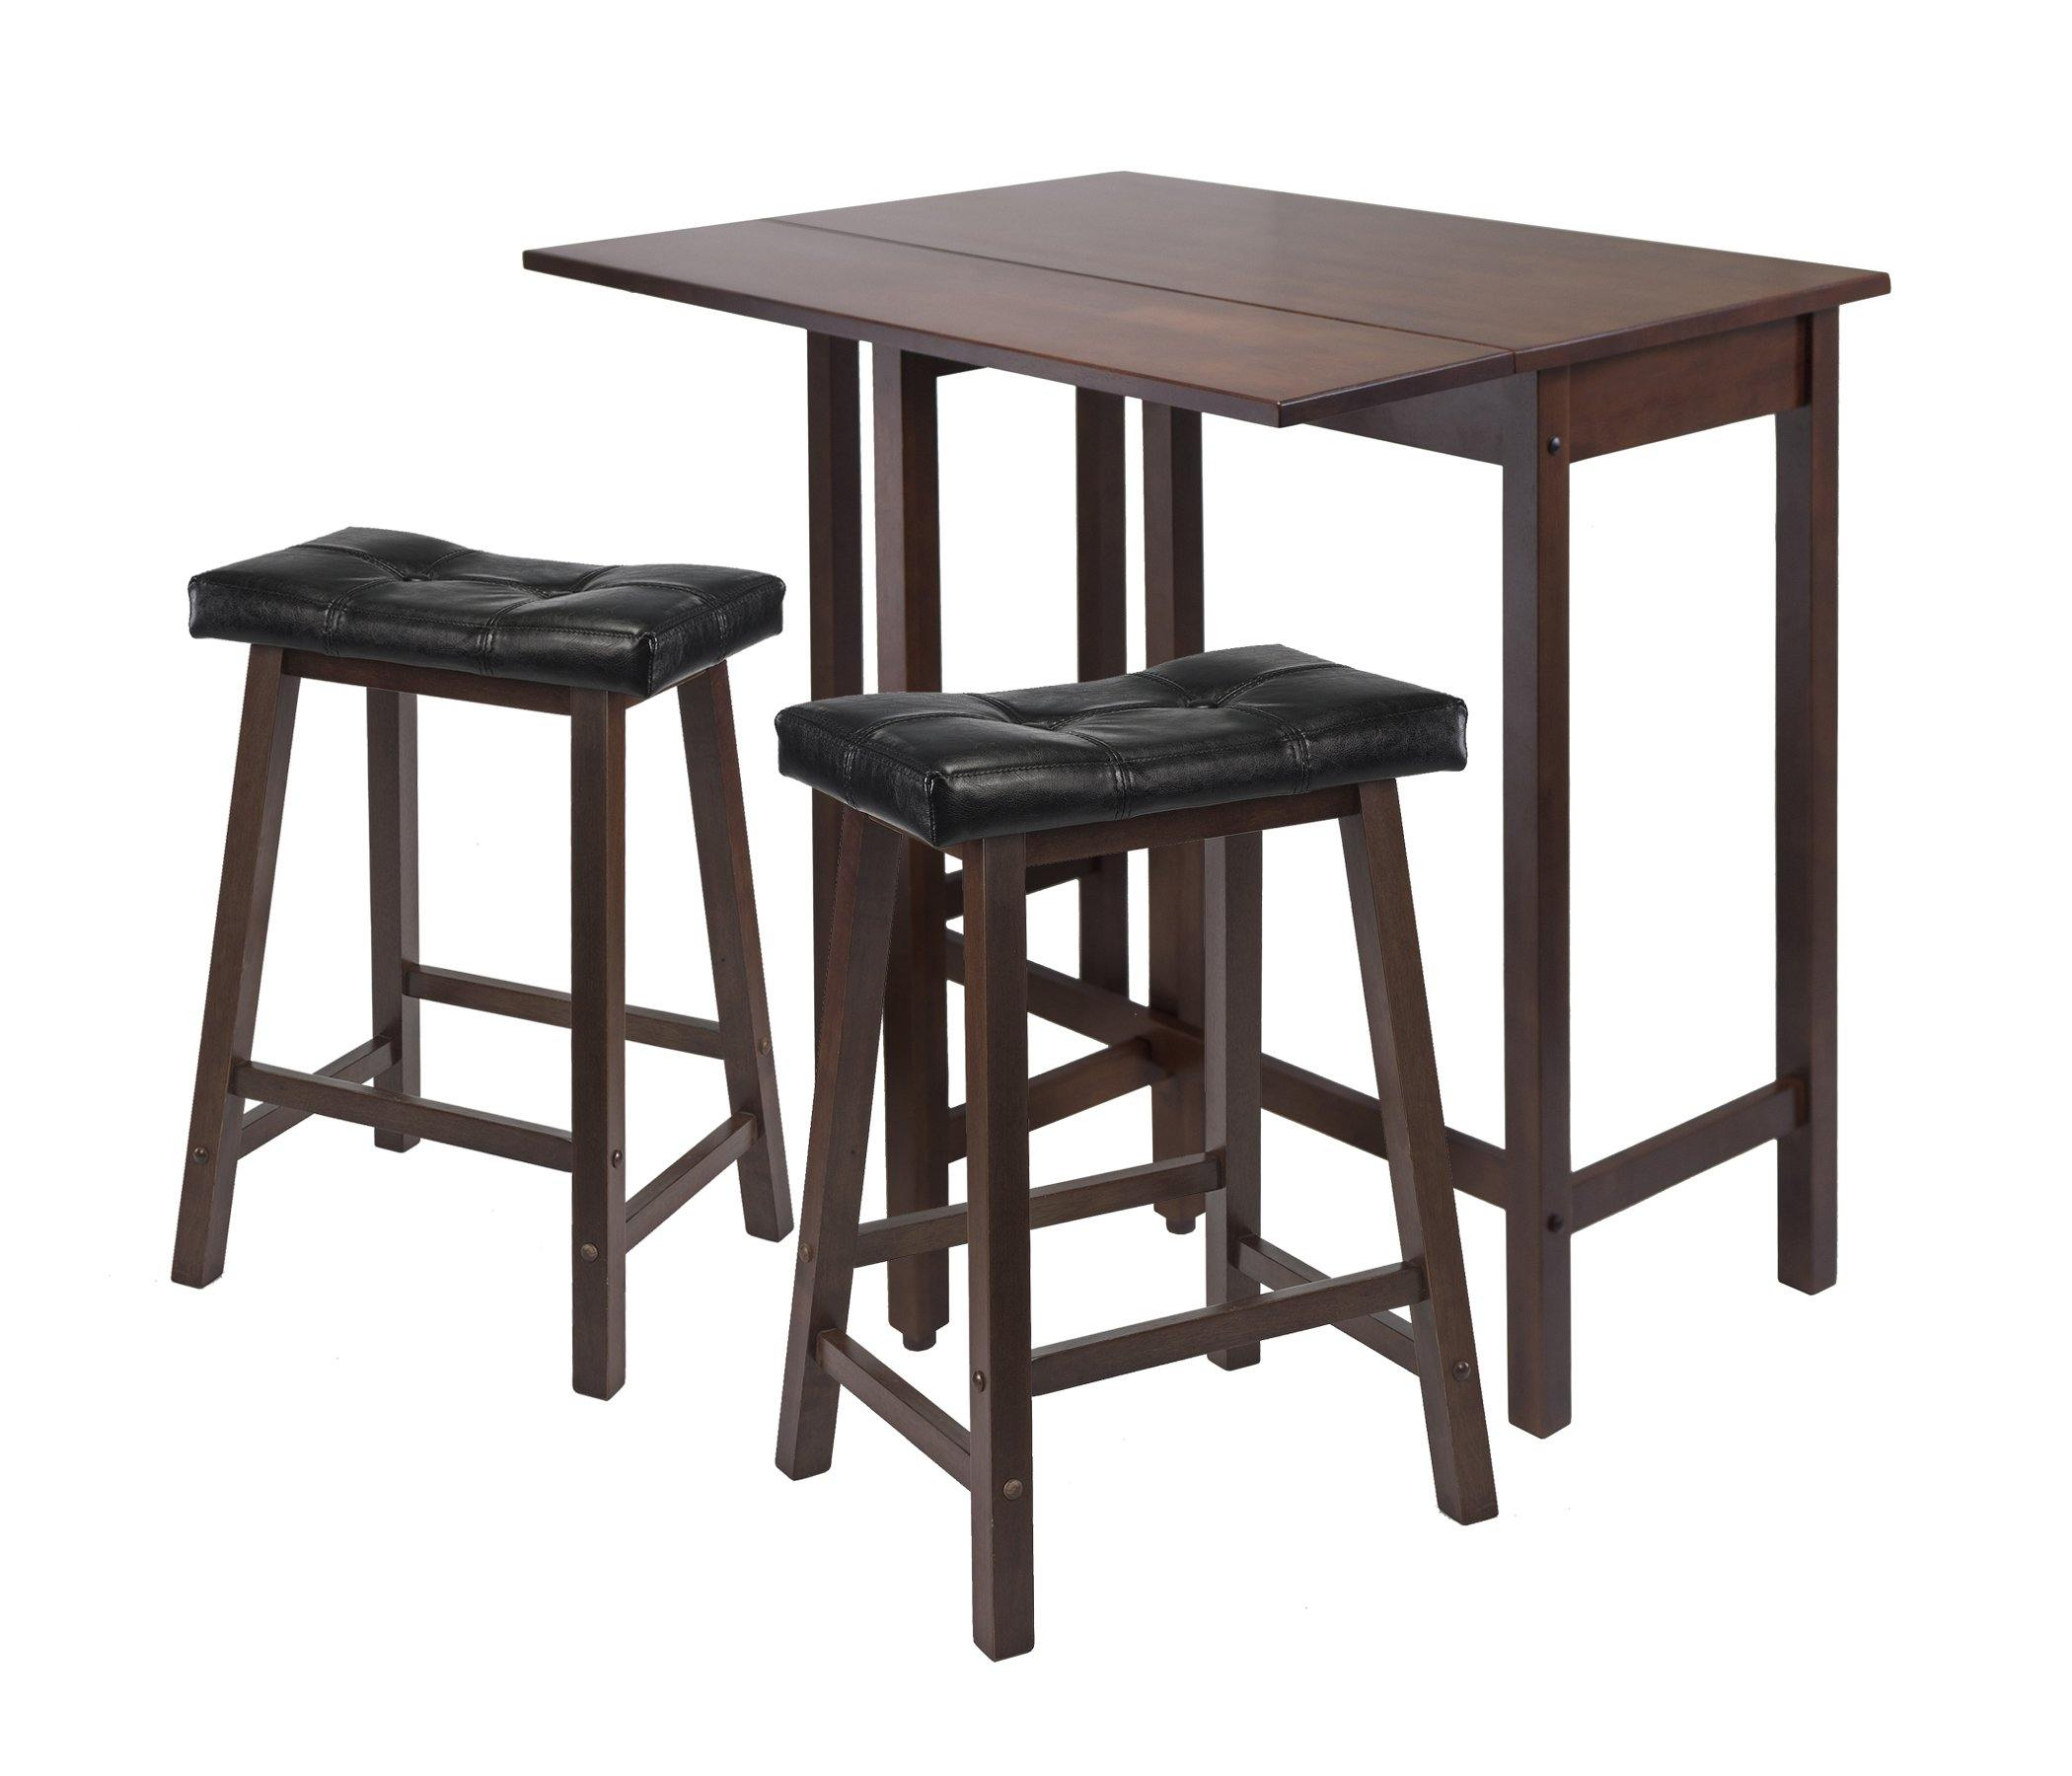 3-Pc Lynnwood Drop Leaf Kitchen Table with 2 Cushion Saddle Seat Stools - My USA Furniture